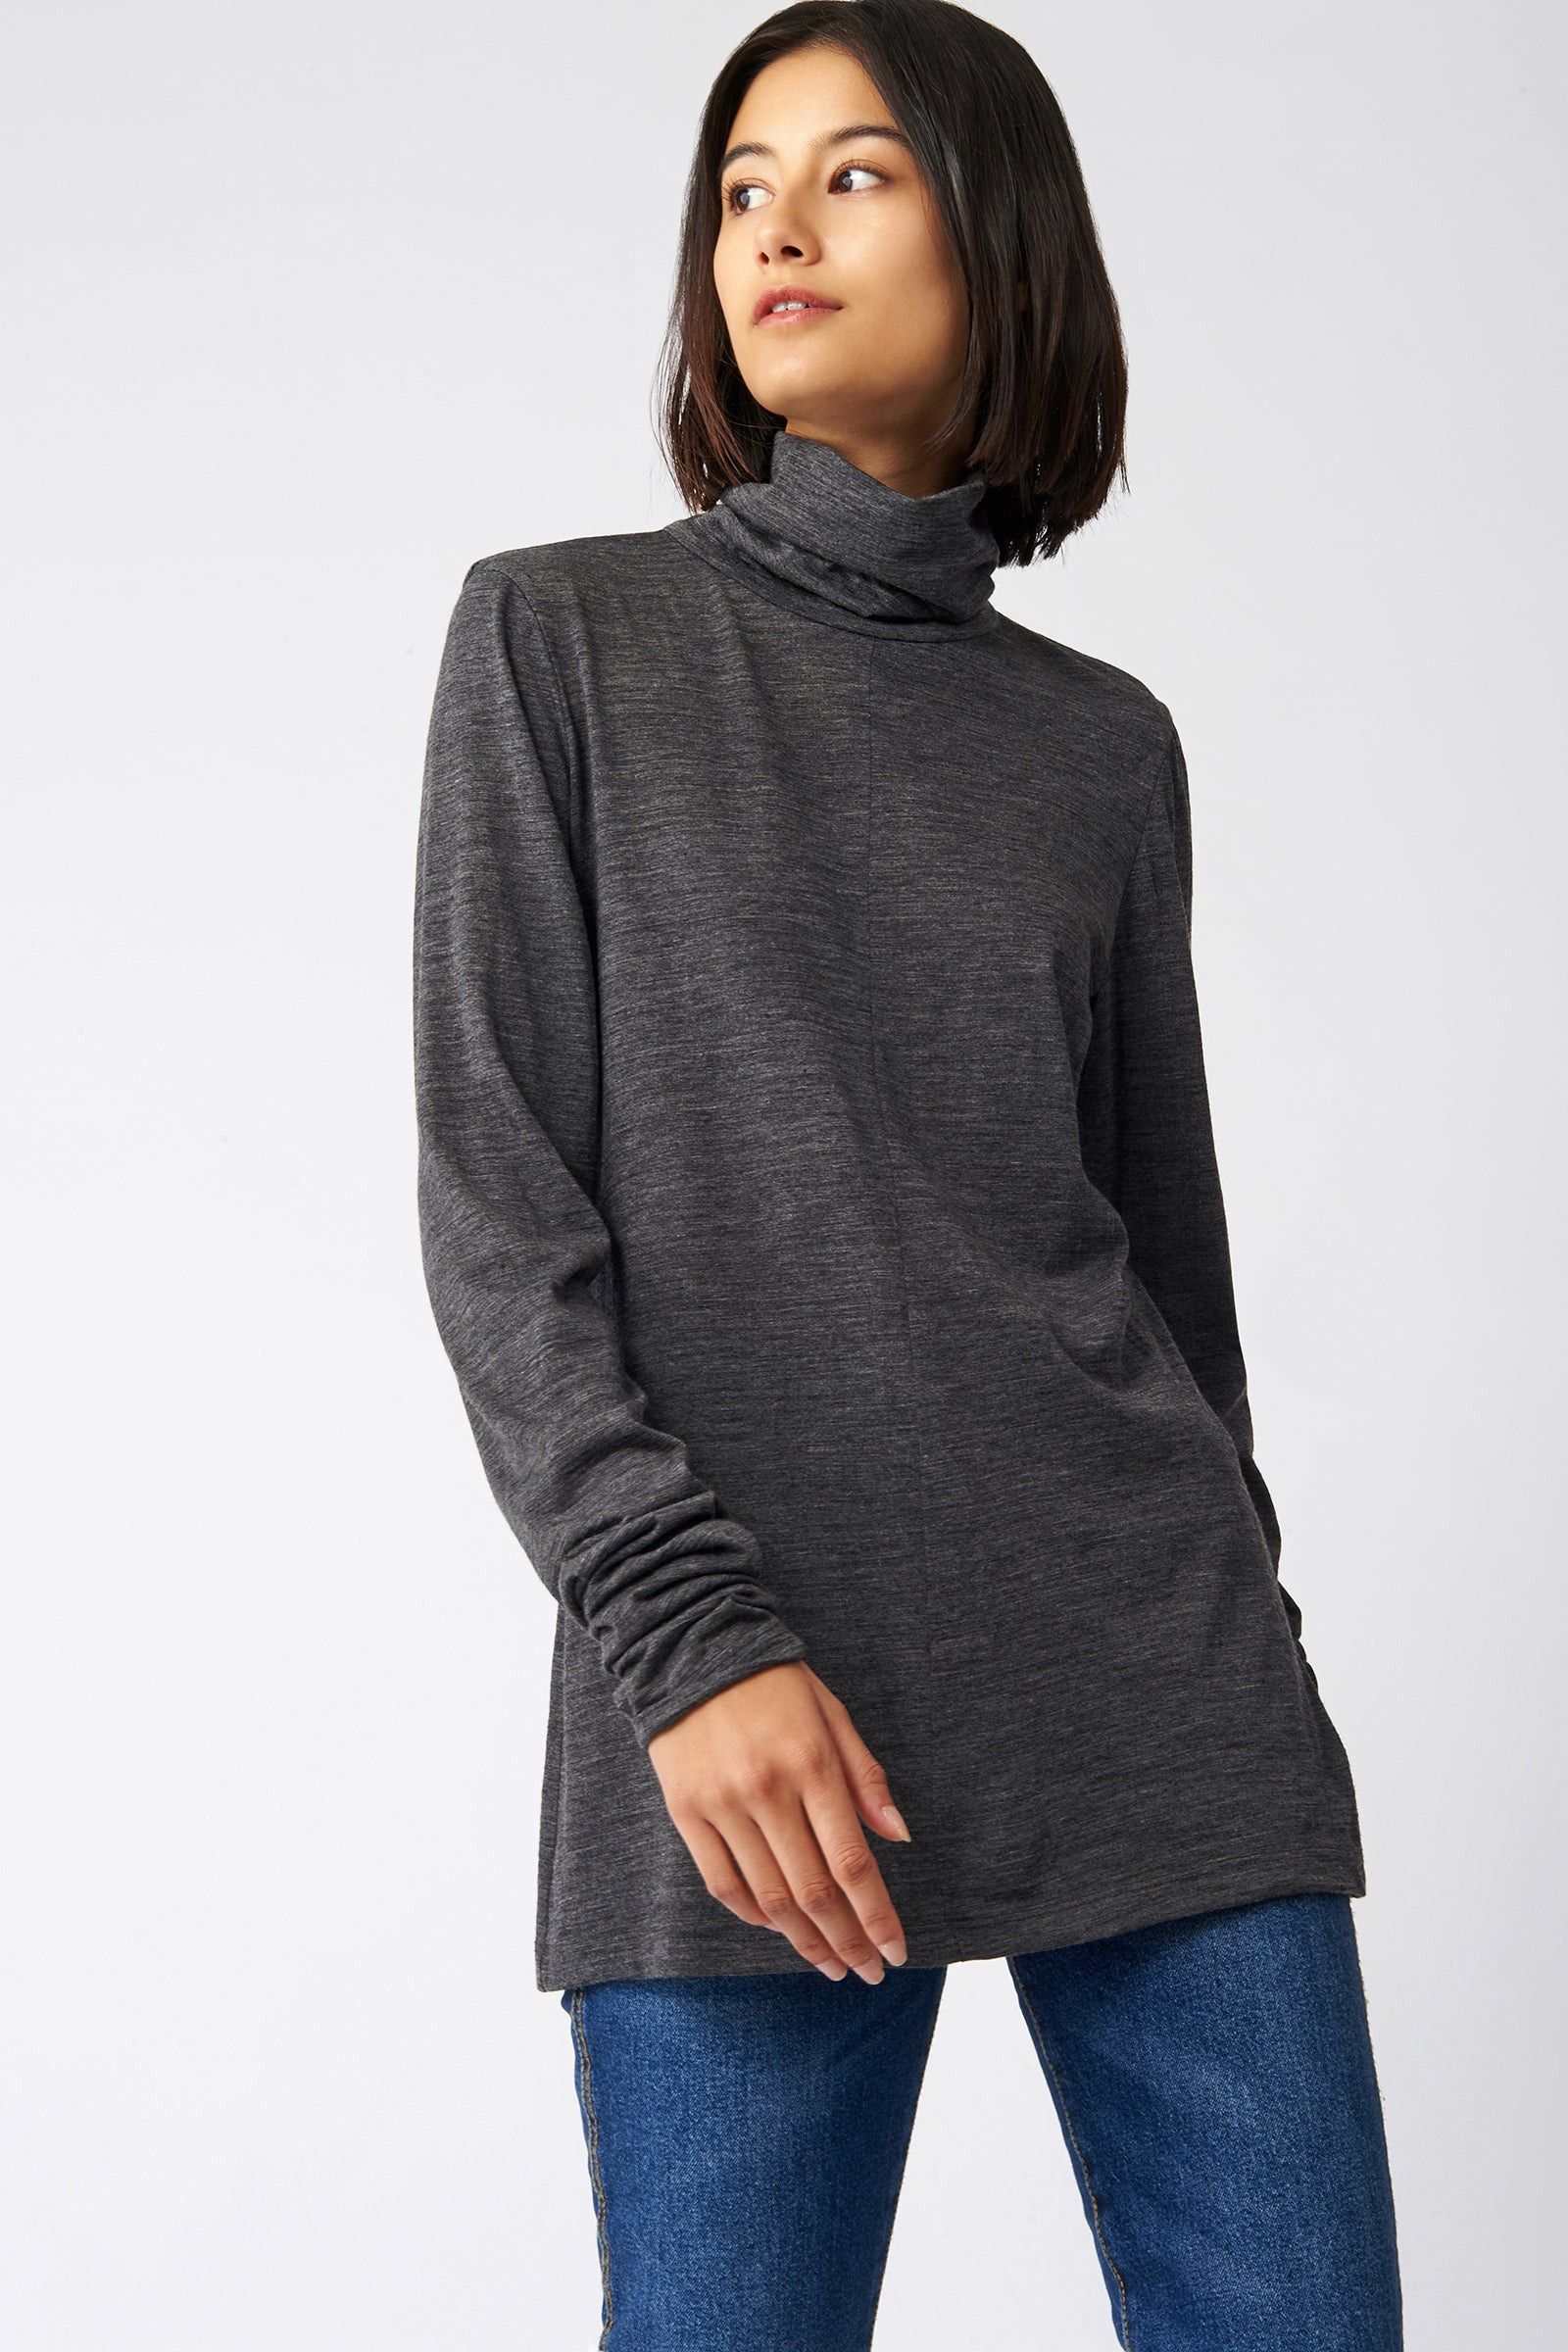 Kal Rieman Fitted Turtleneck in Charcoal on Model Front Side View